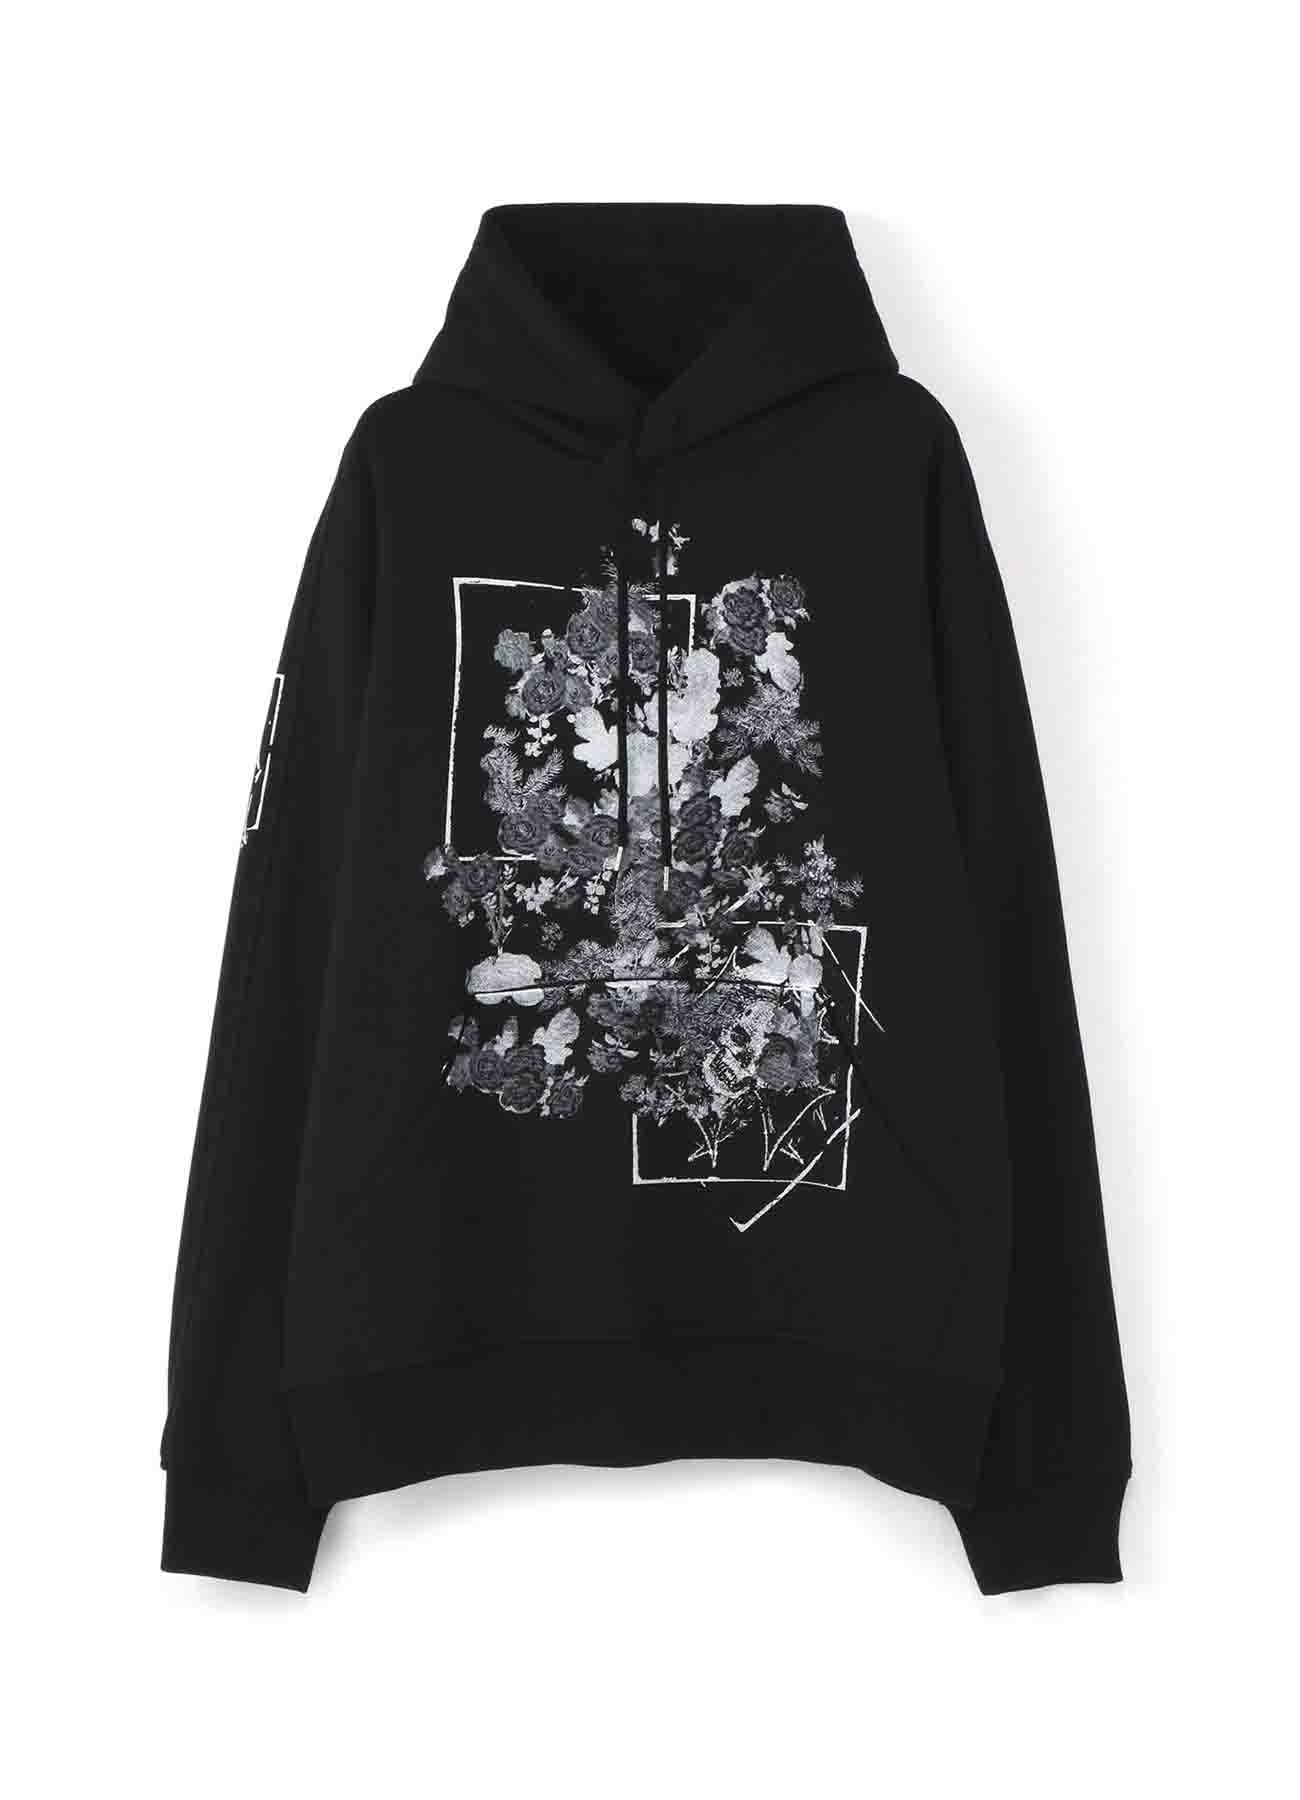 French Terry Stitch Work A Lot of Flowers&Carving Skull Hoodie